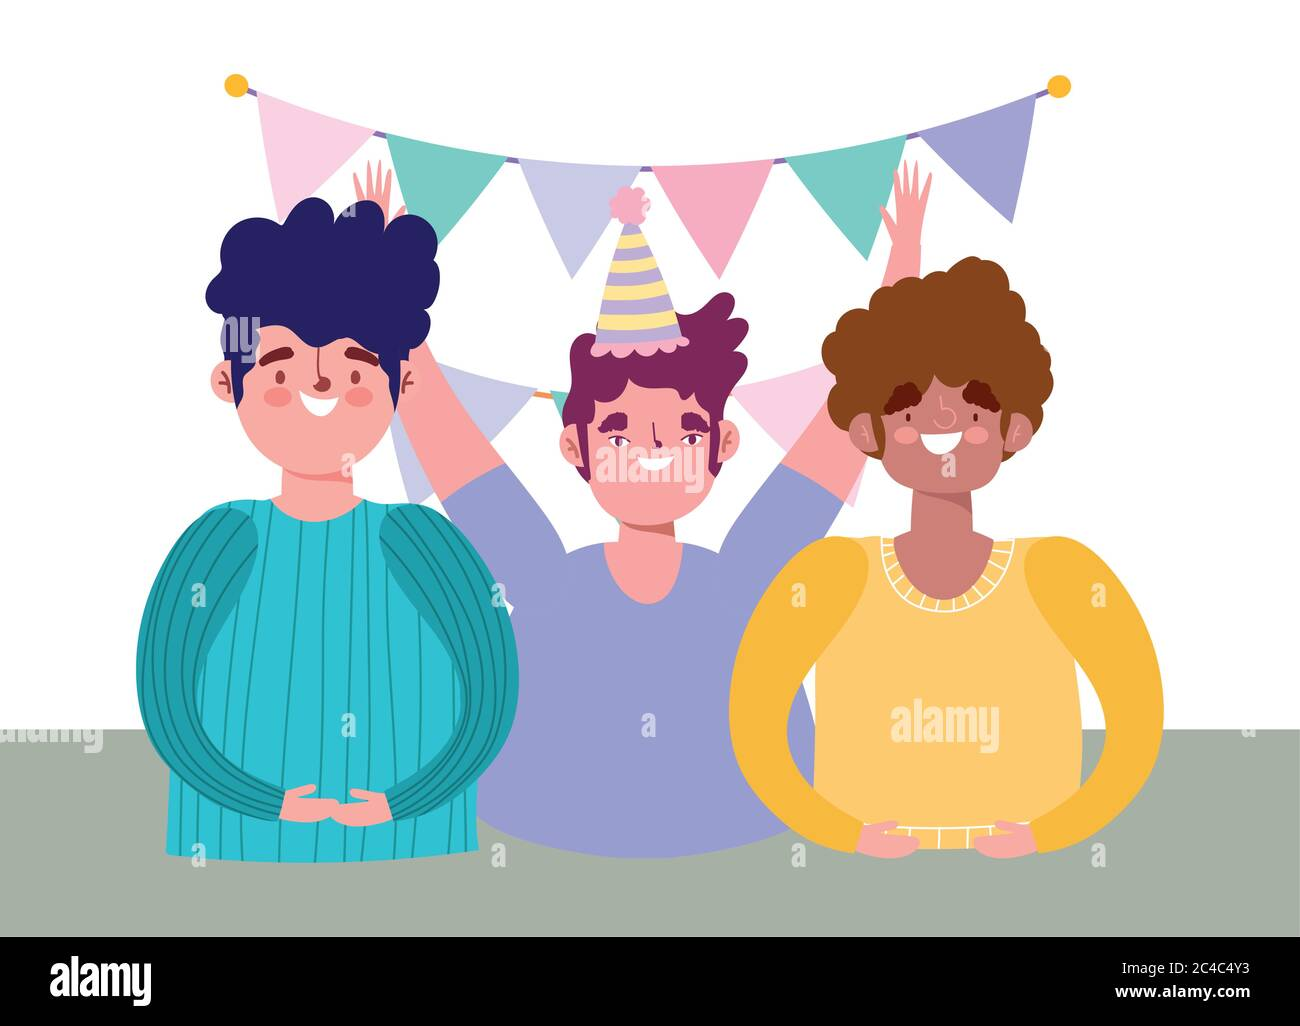 online party, birthday or meeting friends, happy group men with hat and pennants celebraton vector illustration Stock Vector